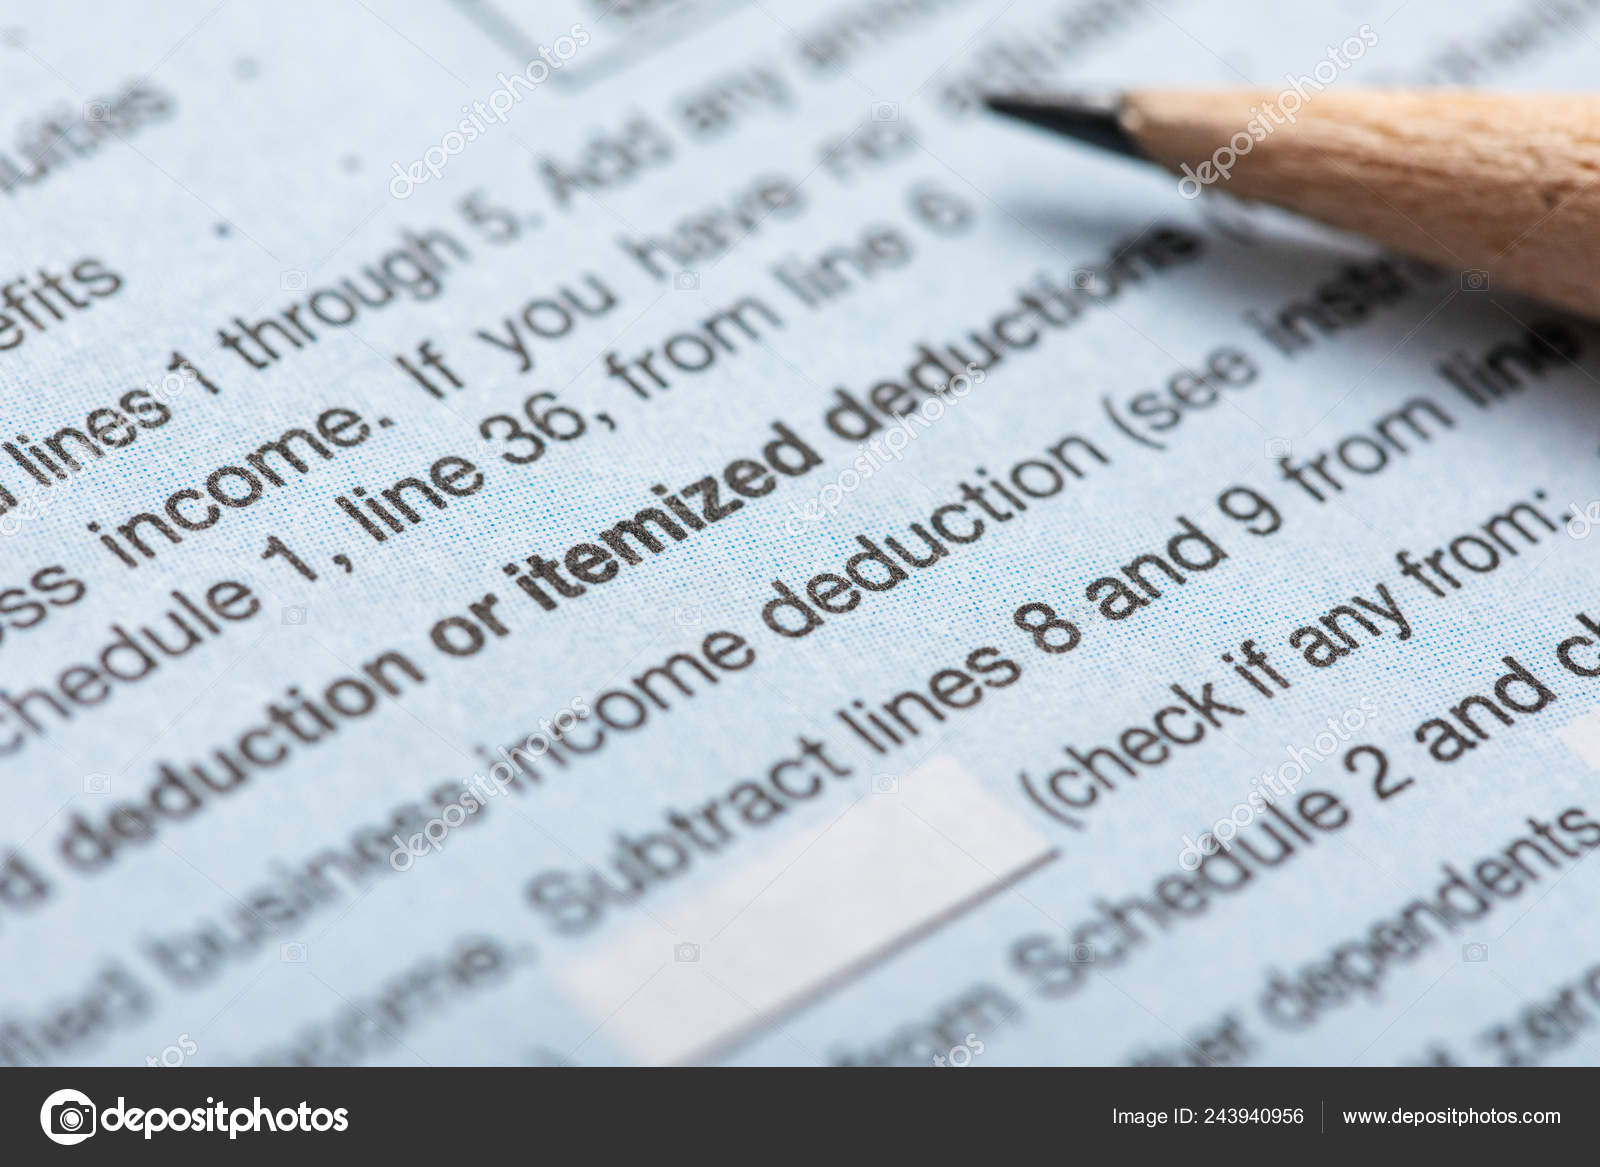 Series Current 2018 1040 Tax Forms — Stock Photo © sjlocke #243940956